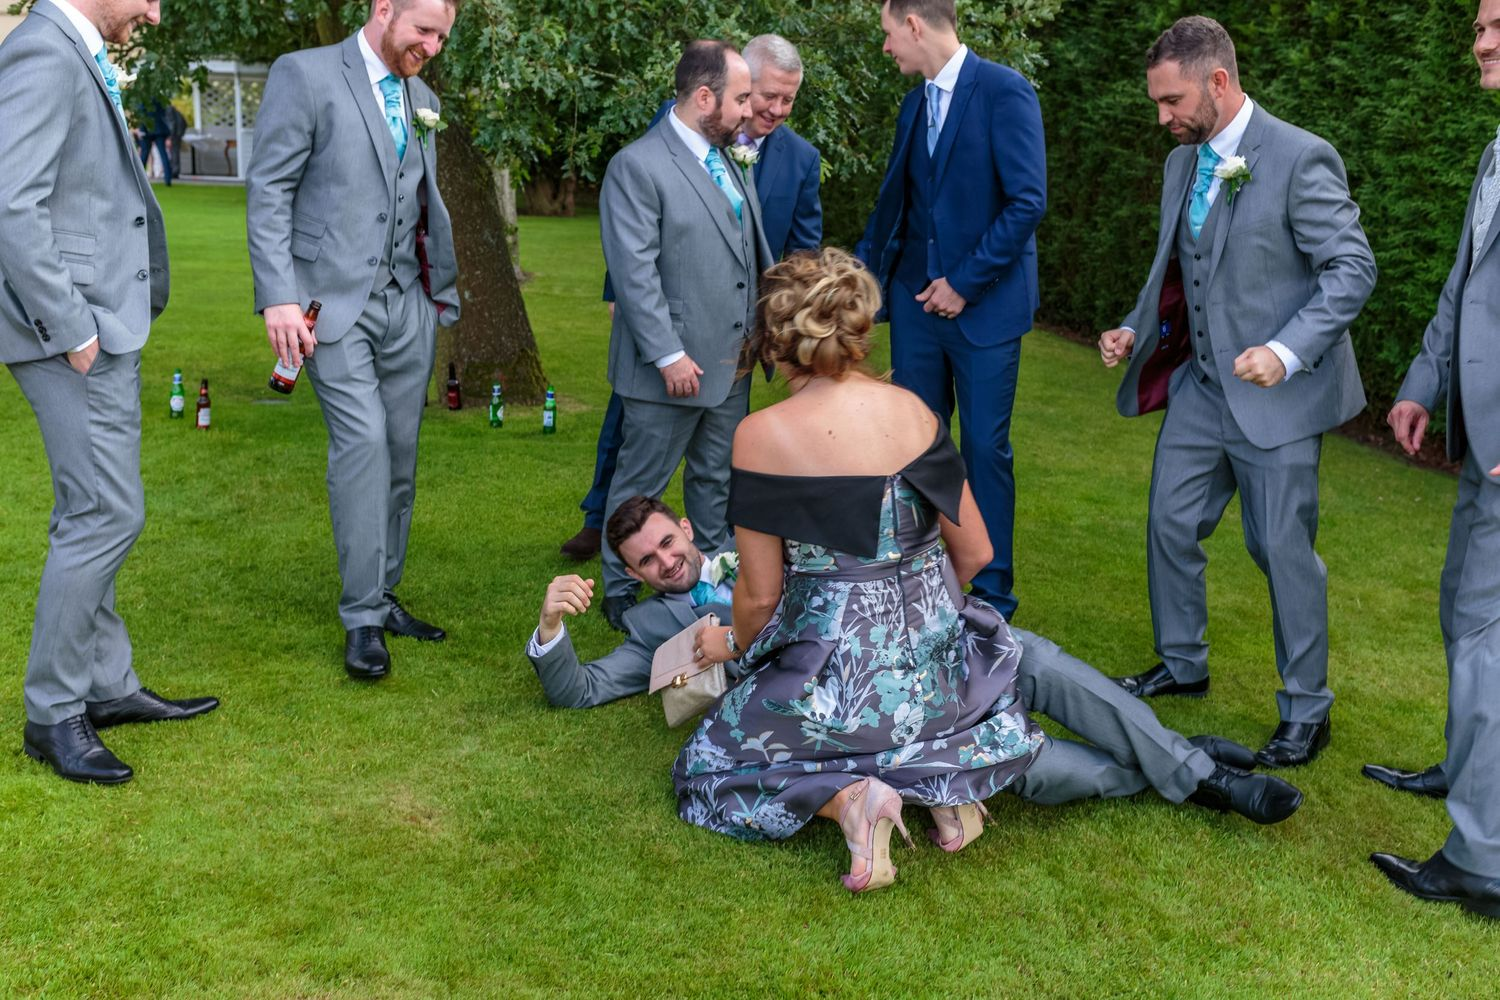 best man lying on the floor surrounded by the groomsmen with a lady kneeling over him